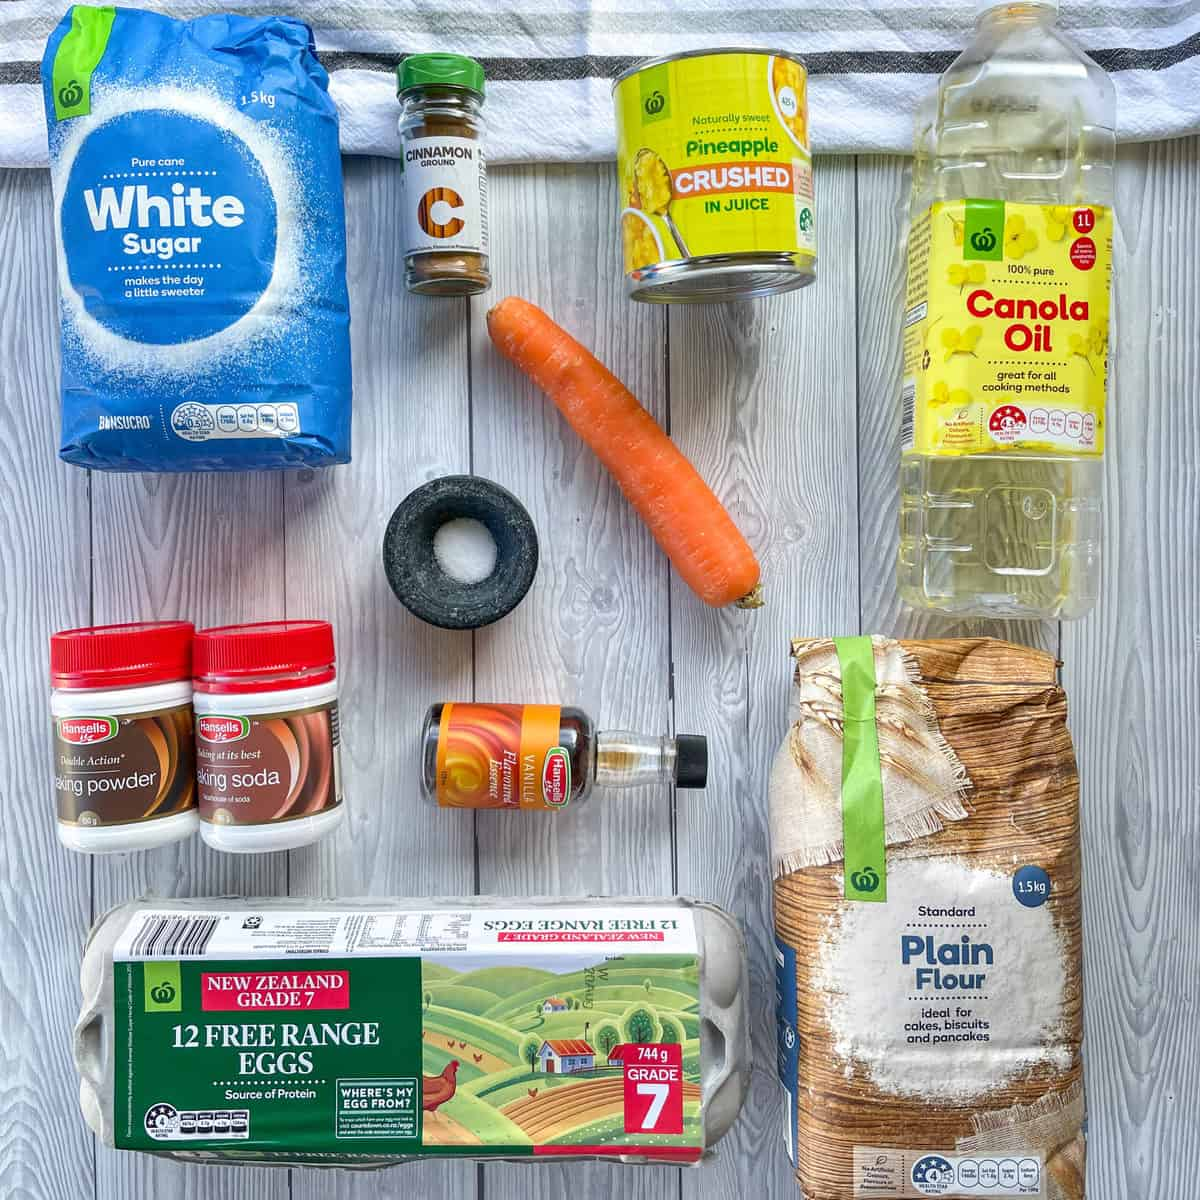 Flatlay of the ingredients and brands I use from Countdown Supermarkets